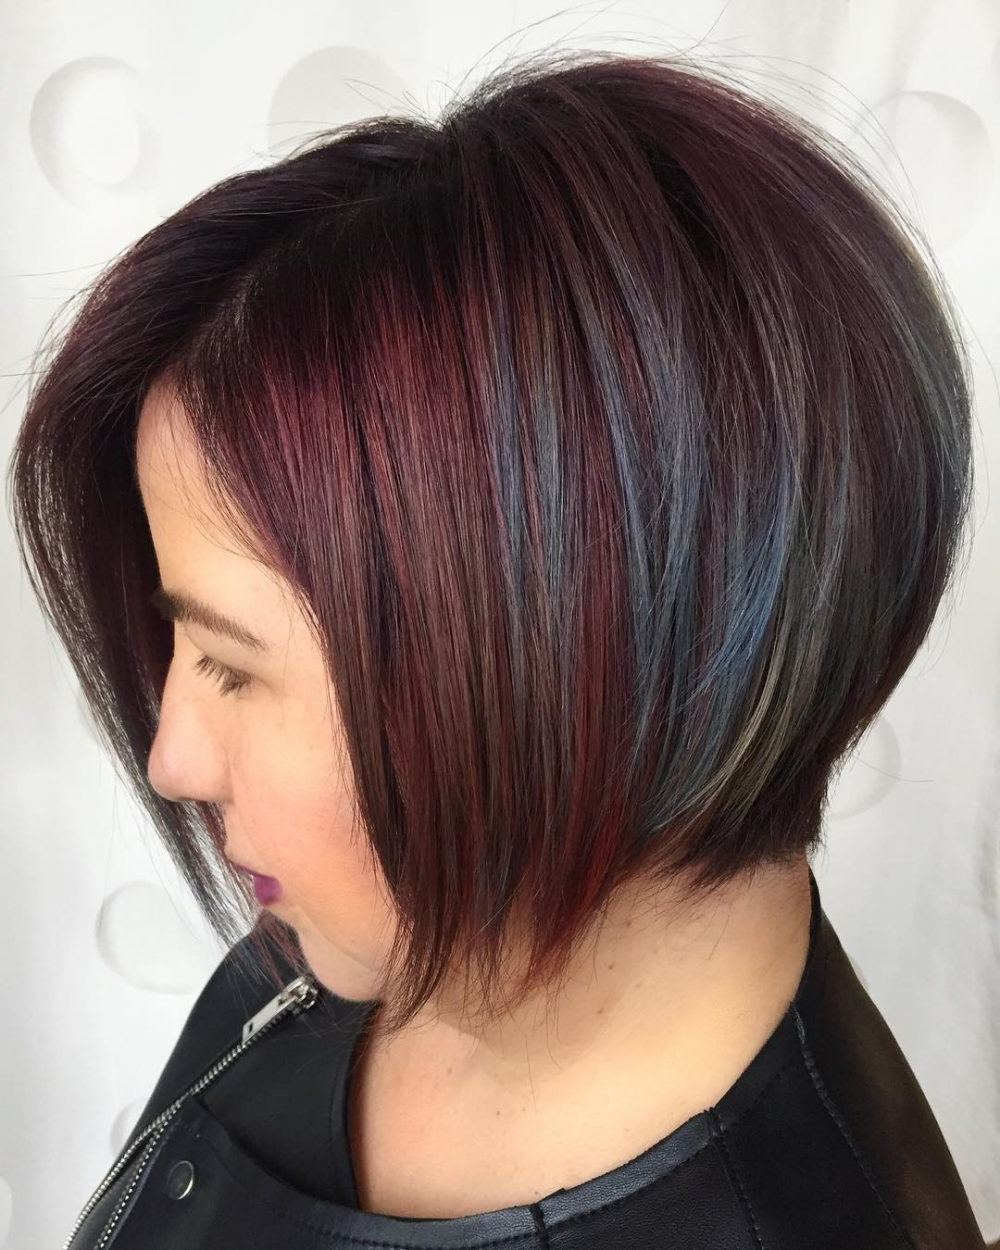 2019 Latest Uneven Layered Bob Hairstyles For Thick Hair